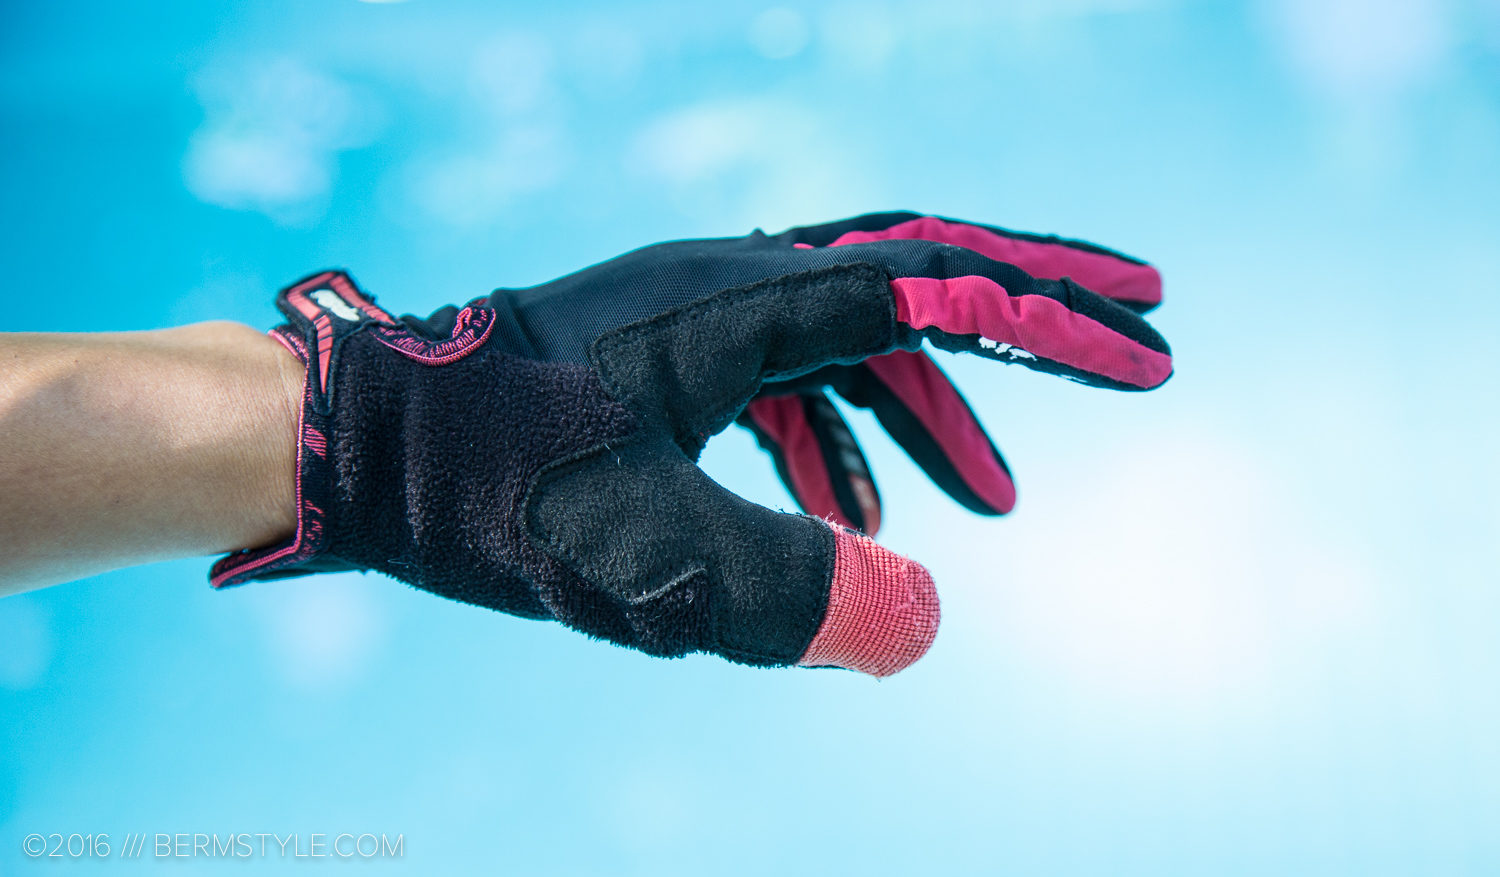 GripGrab Gloves